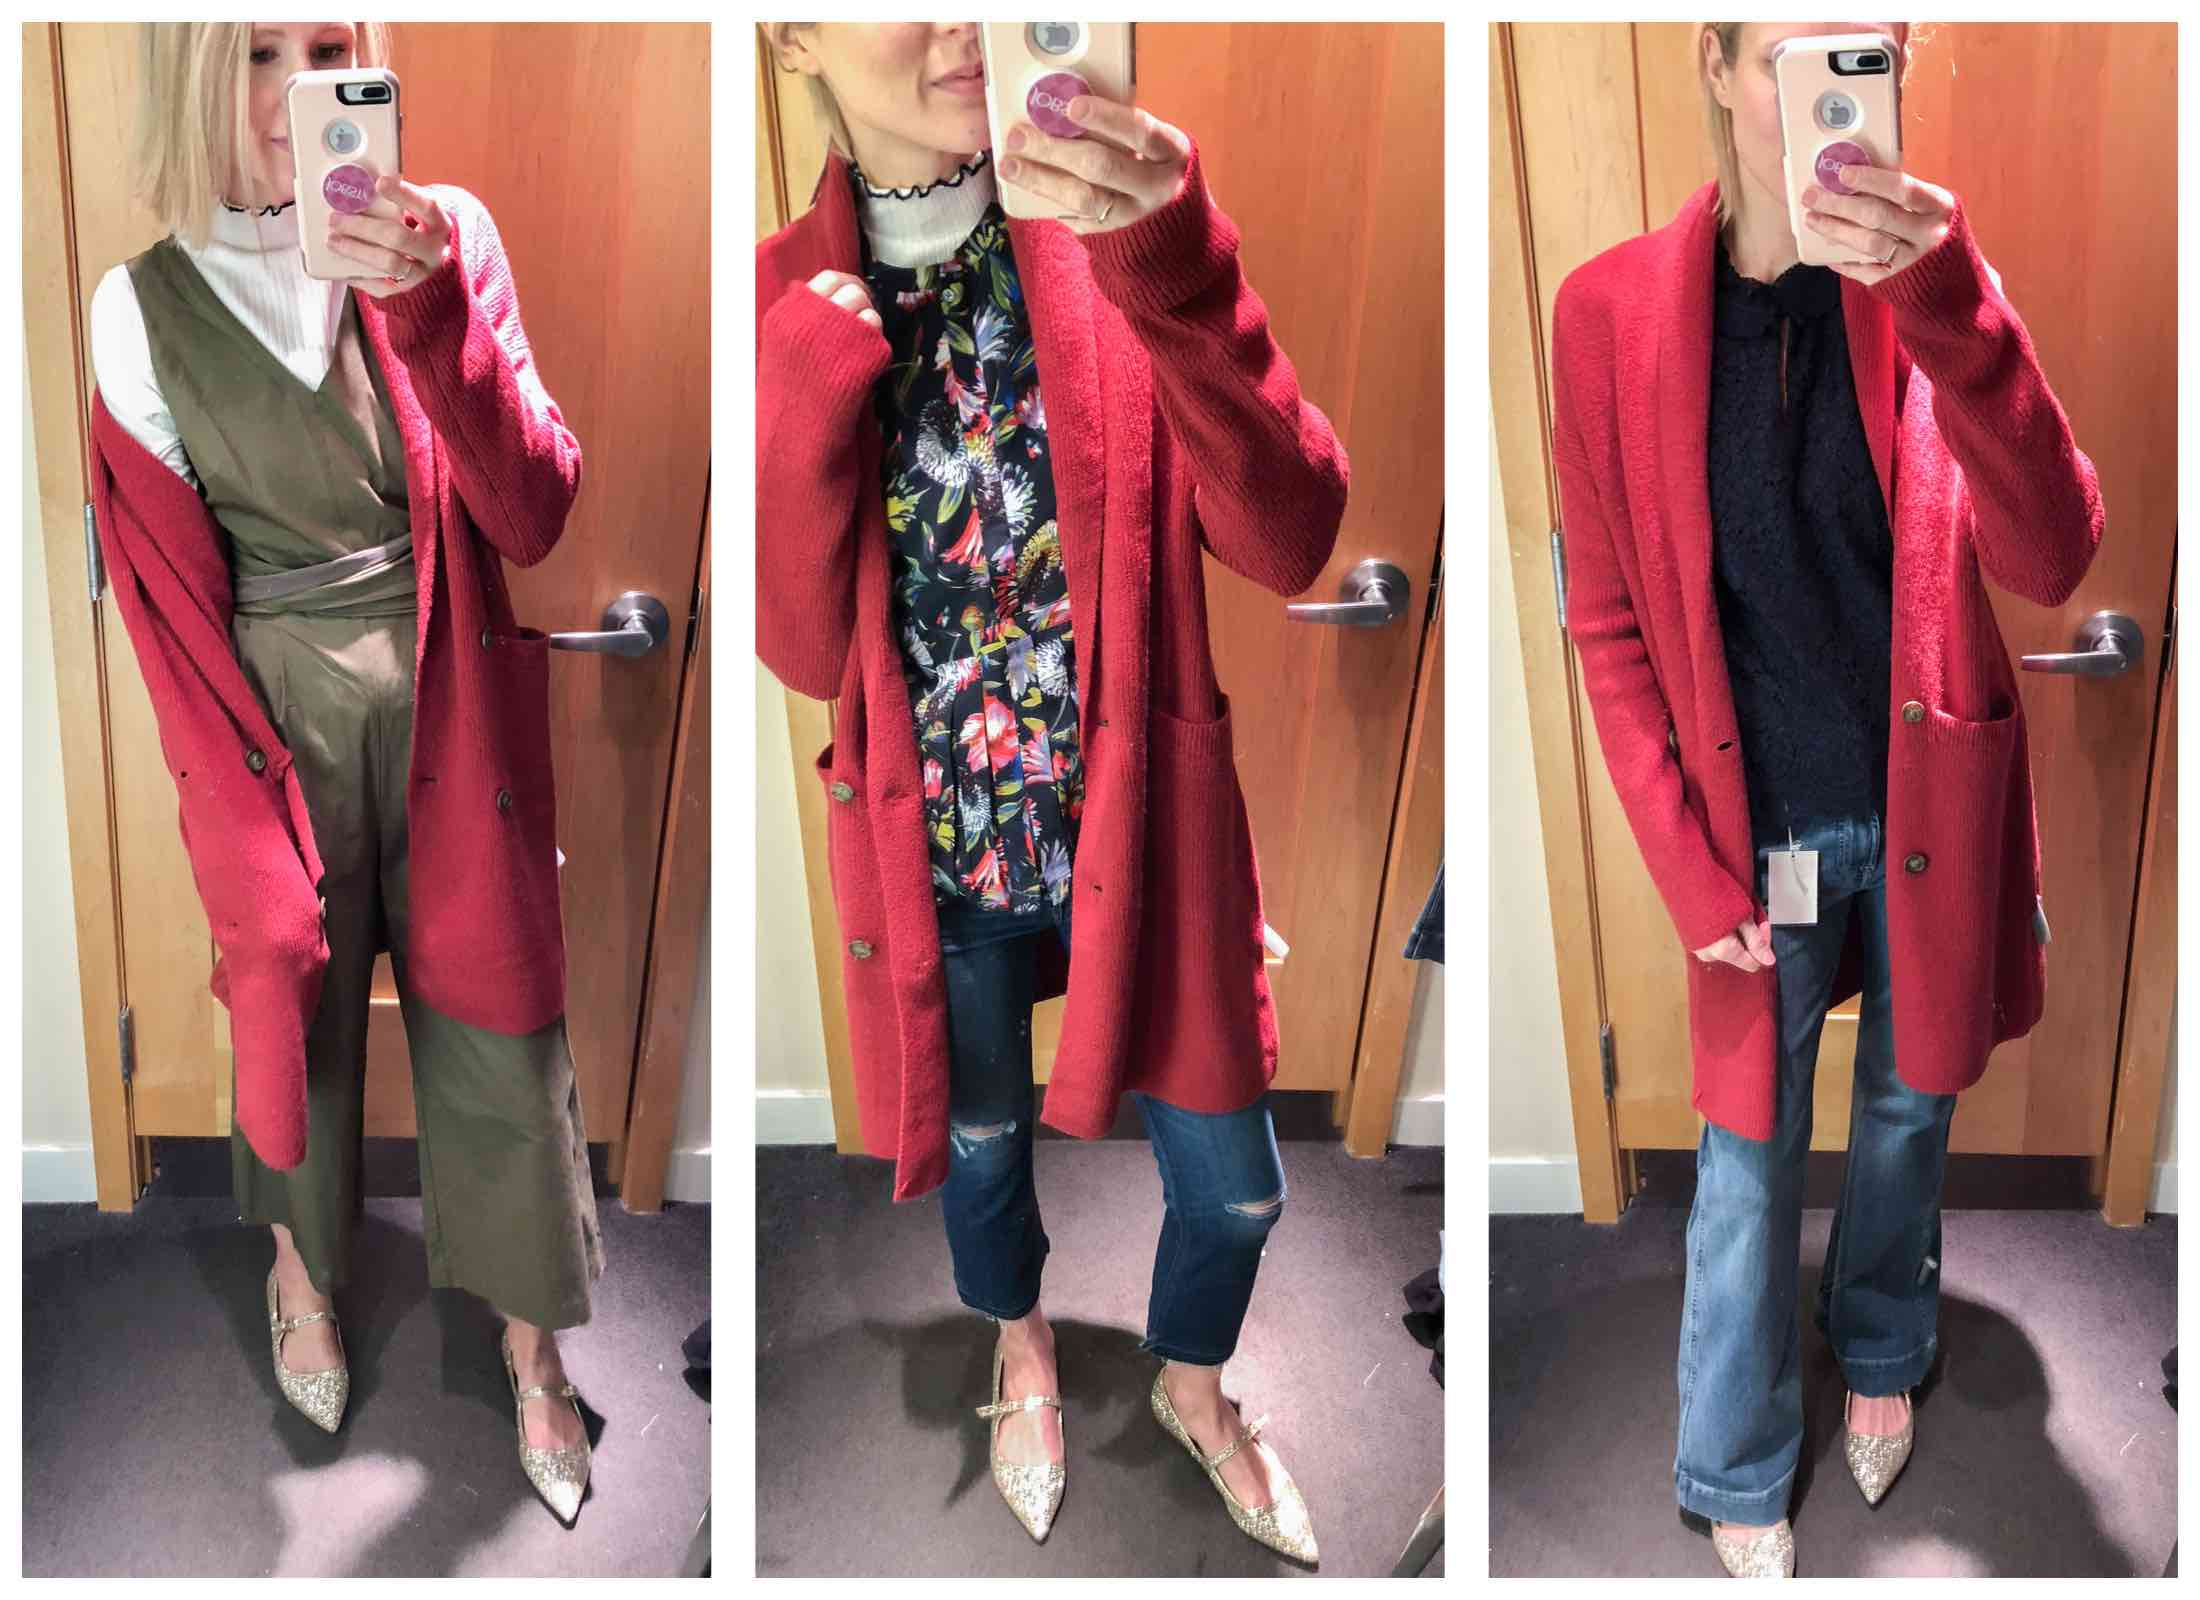 Long Red Cardigan Coat Styled 3 Ways - We're uber-excited about what J.Crew is up to. The styles are fab with high sellout risk. If there's one place to start holiday shopping now...it's J.Crew.